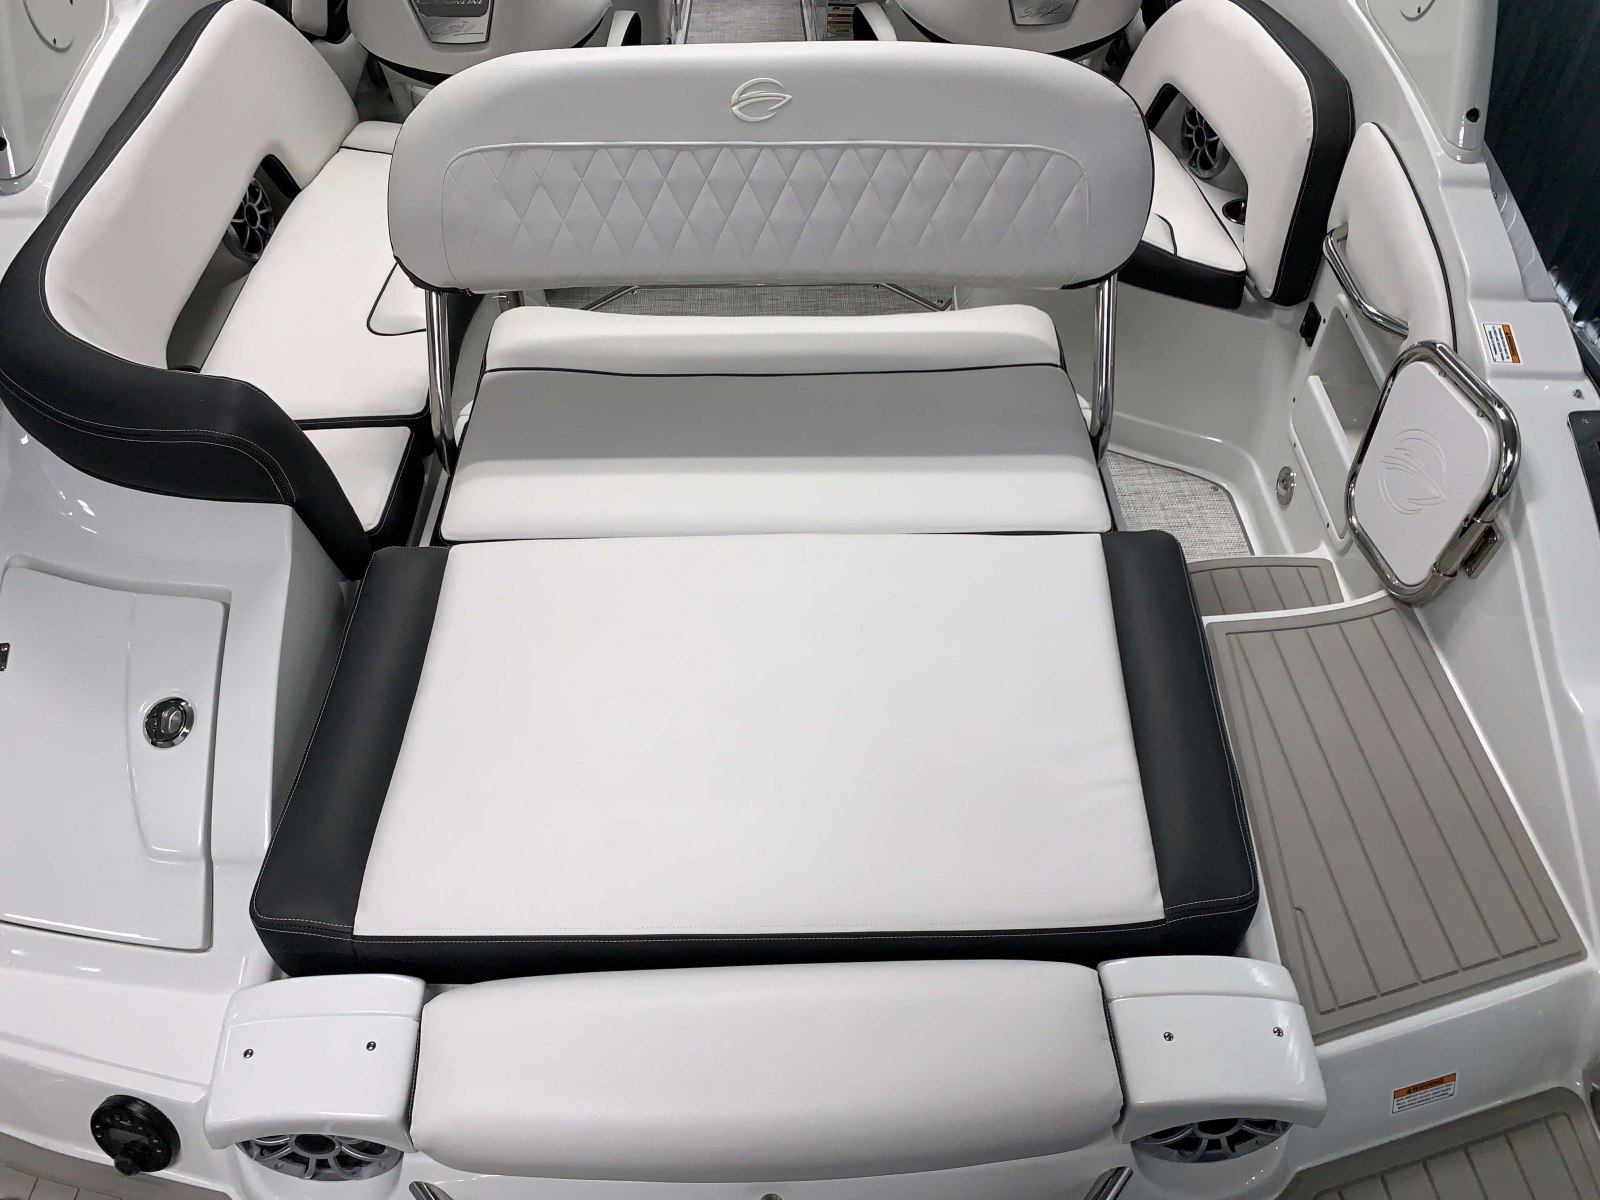 Rear Facing Swing Back Seat of the 2021 Crownline 255 SS Bowrider Boat